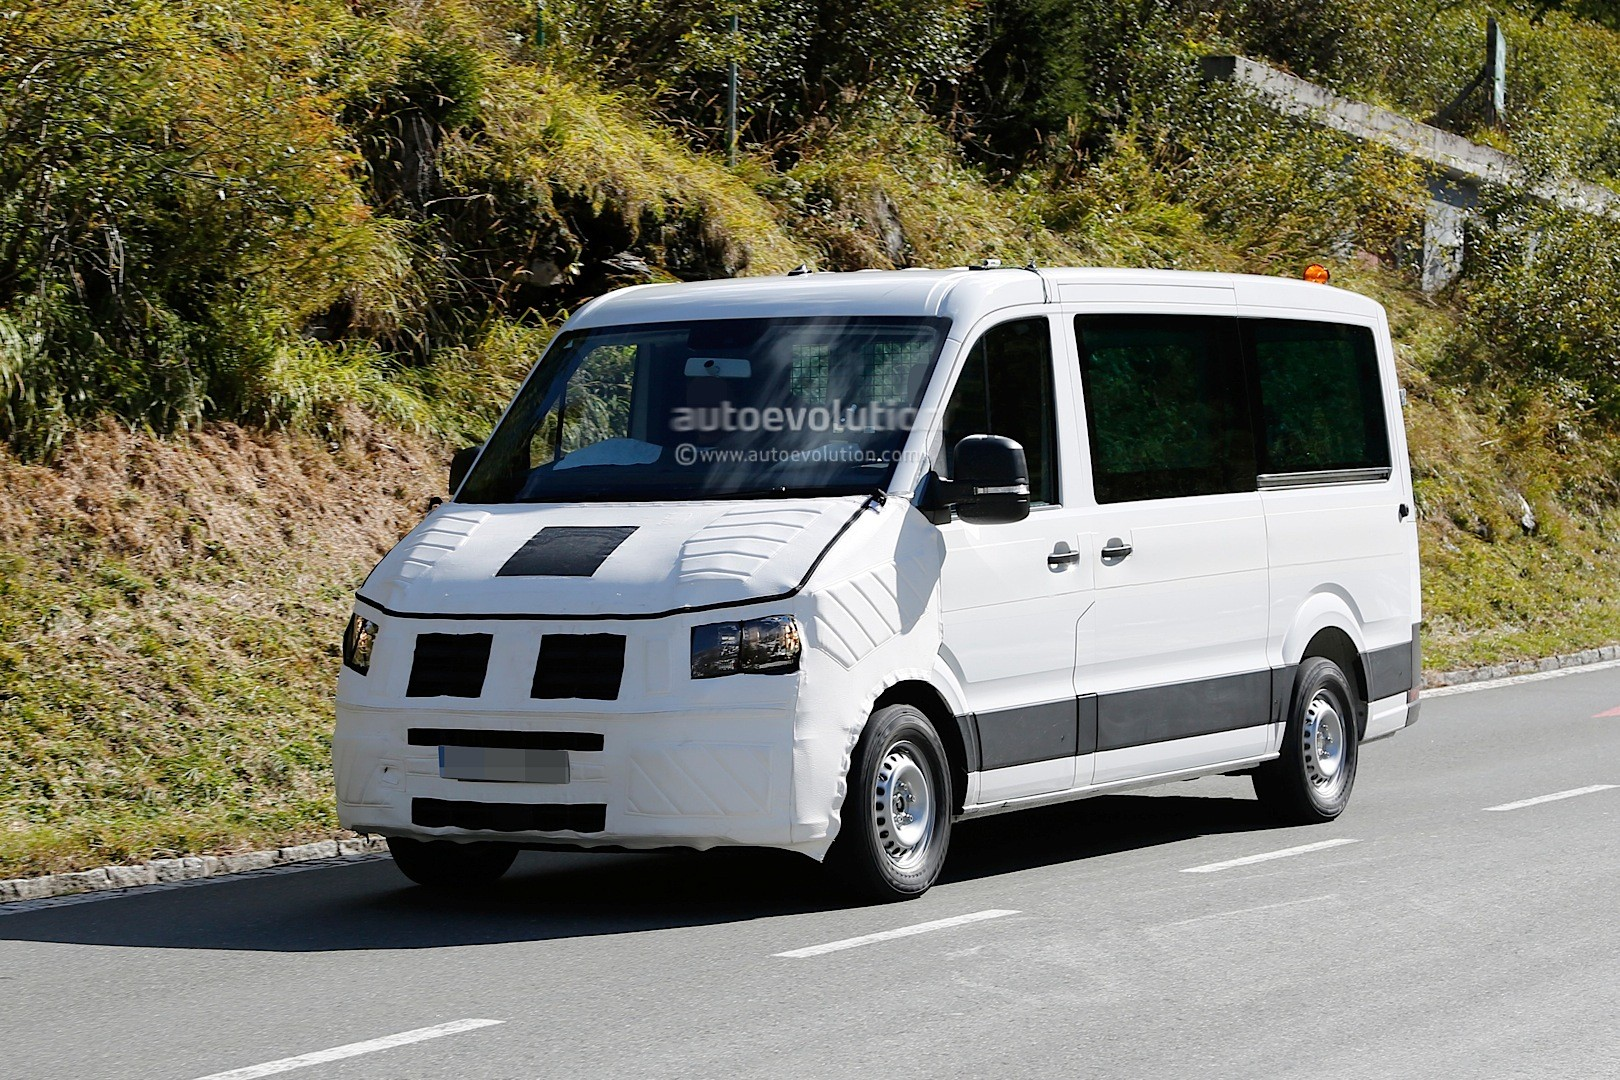 2017 Volkswagen Crafter Takes after the T6 Transporter - autoevolution